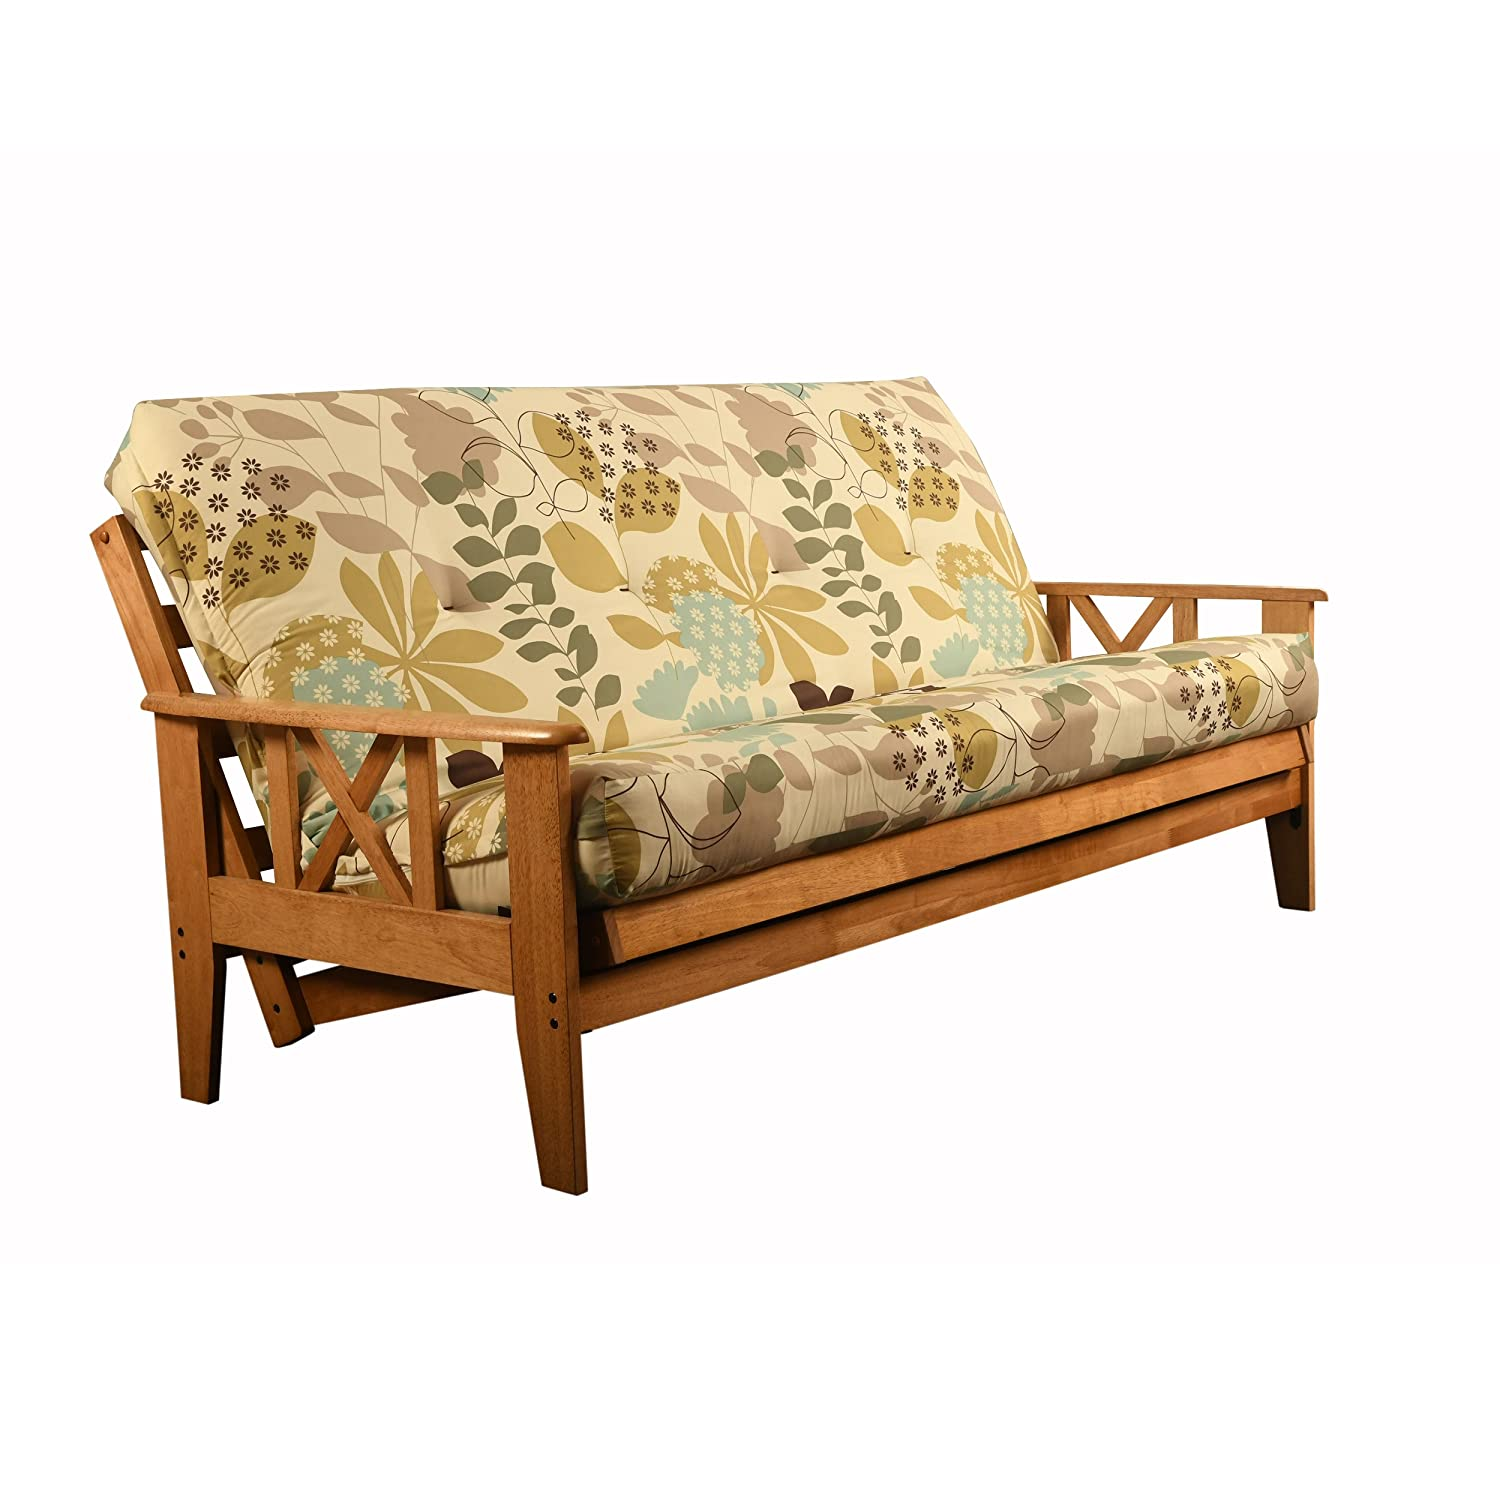 Outstanding St Paul Furniture Eldorado Futon Set Hardwood Frame Full Size W 8 Inch Coil Mattress Sofa Bed Choice To Add Drawer Set Beige Matt And Frame Only Machost Co Dining Chair Design Ideas Machostcouk